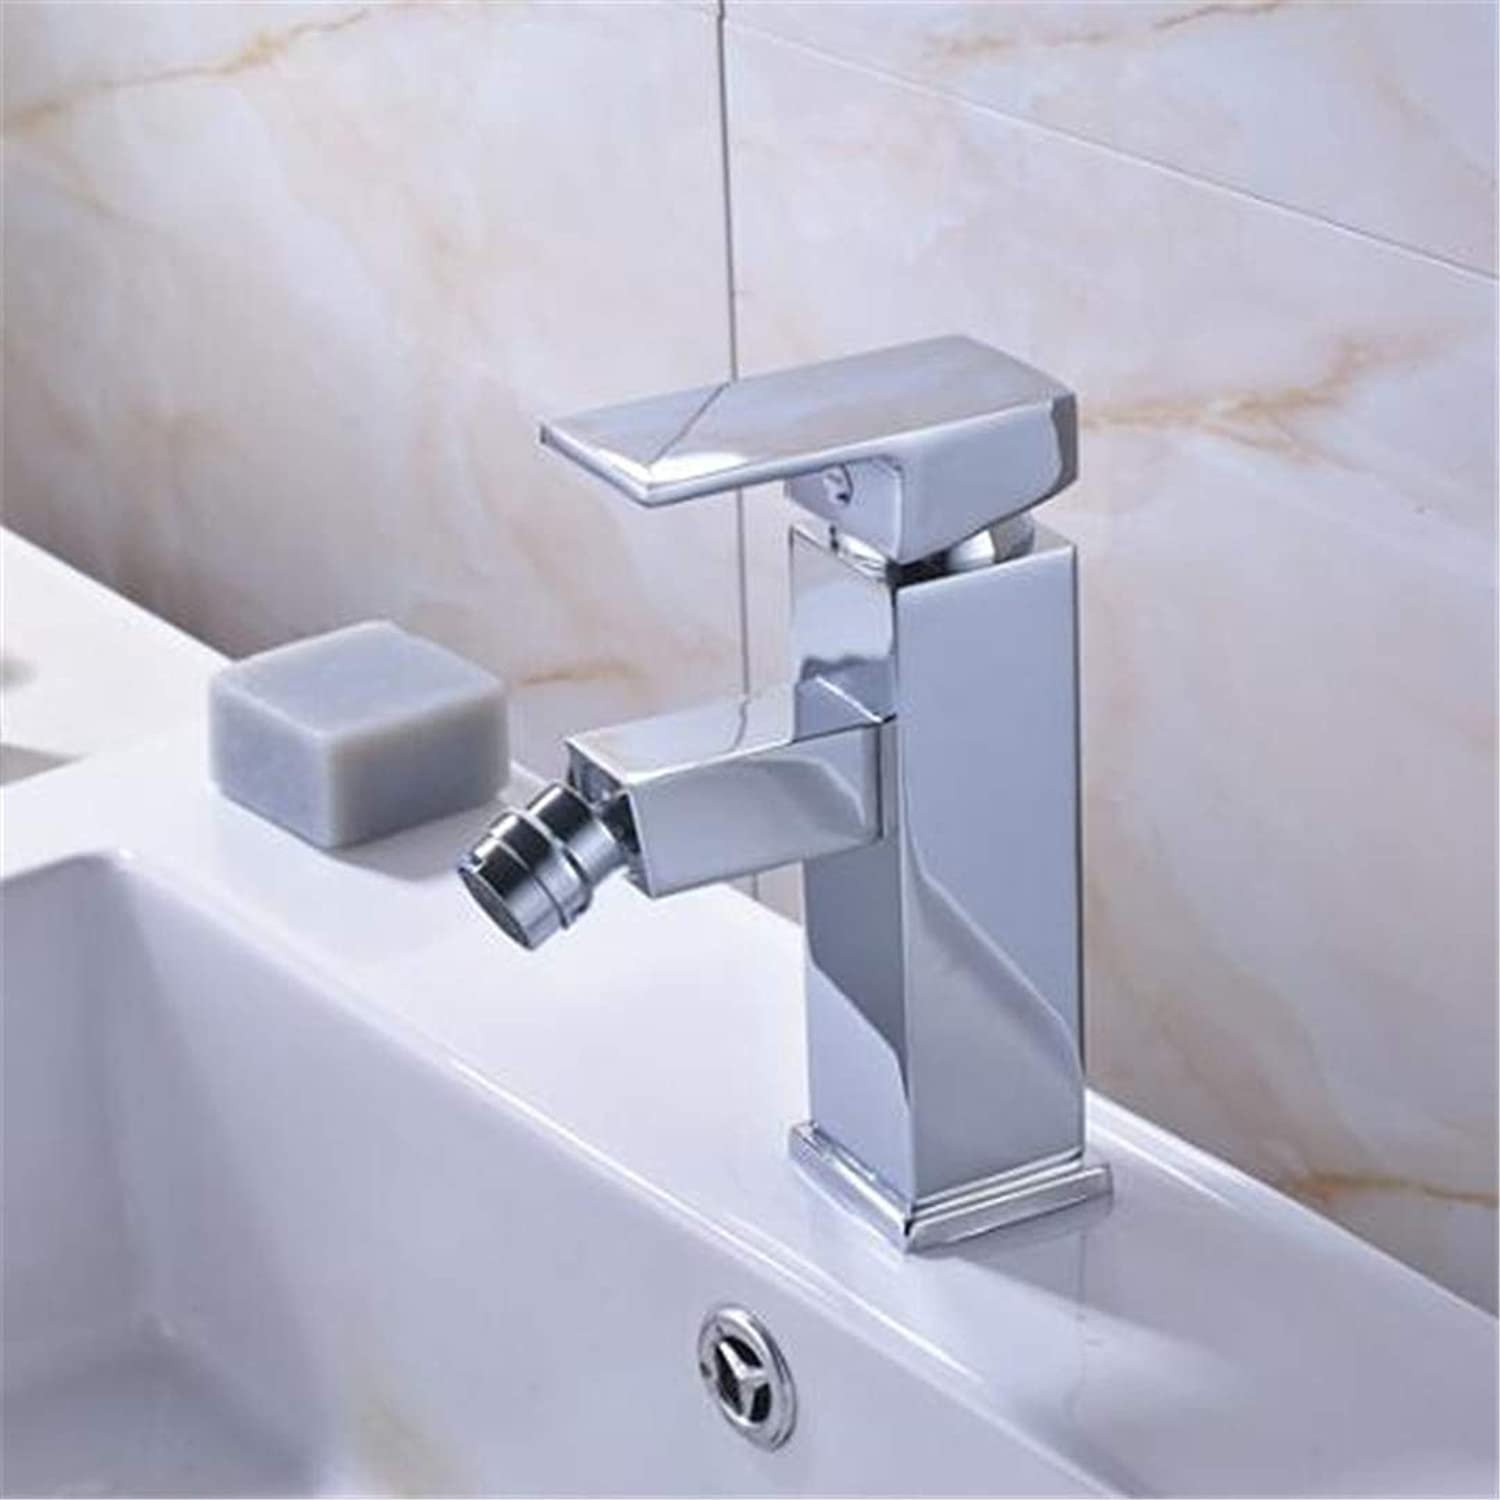 Taps Kitchen Faucet Bathroom Taps Faucet Waterfall Tappolished Chrome Single Lever Bathroom Bidet Faucet Deck Mounted Square Mixer Taps Women Use Faucet